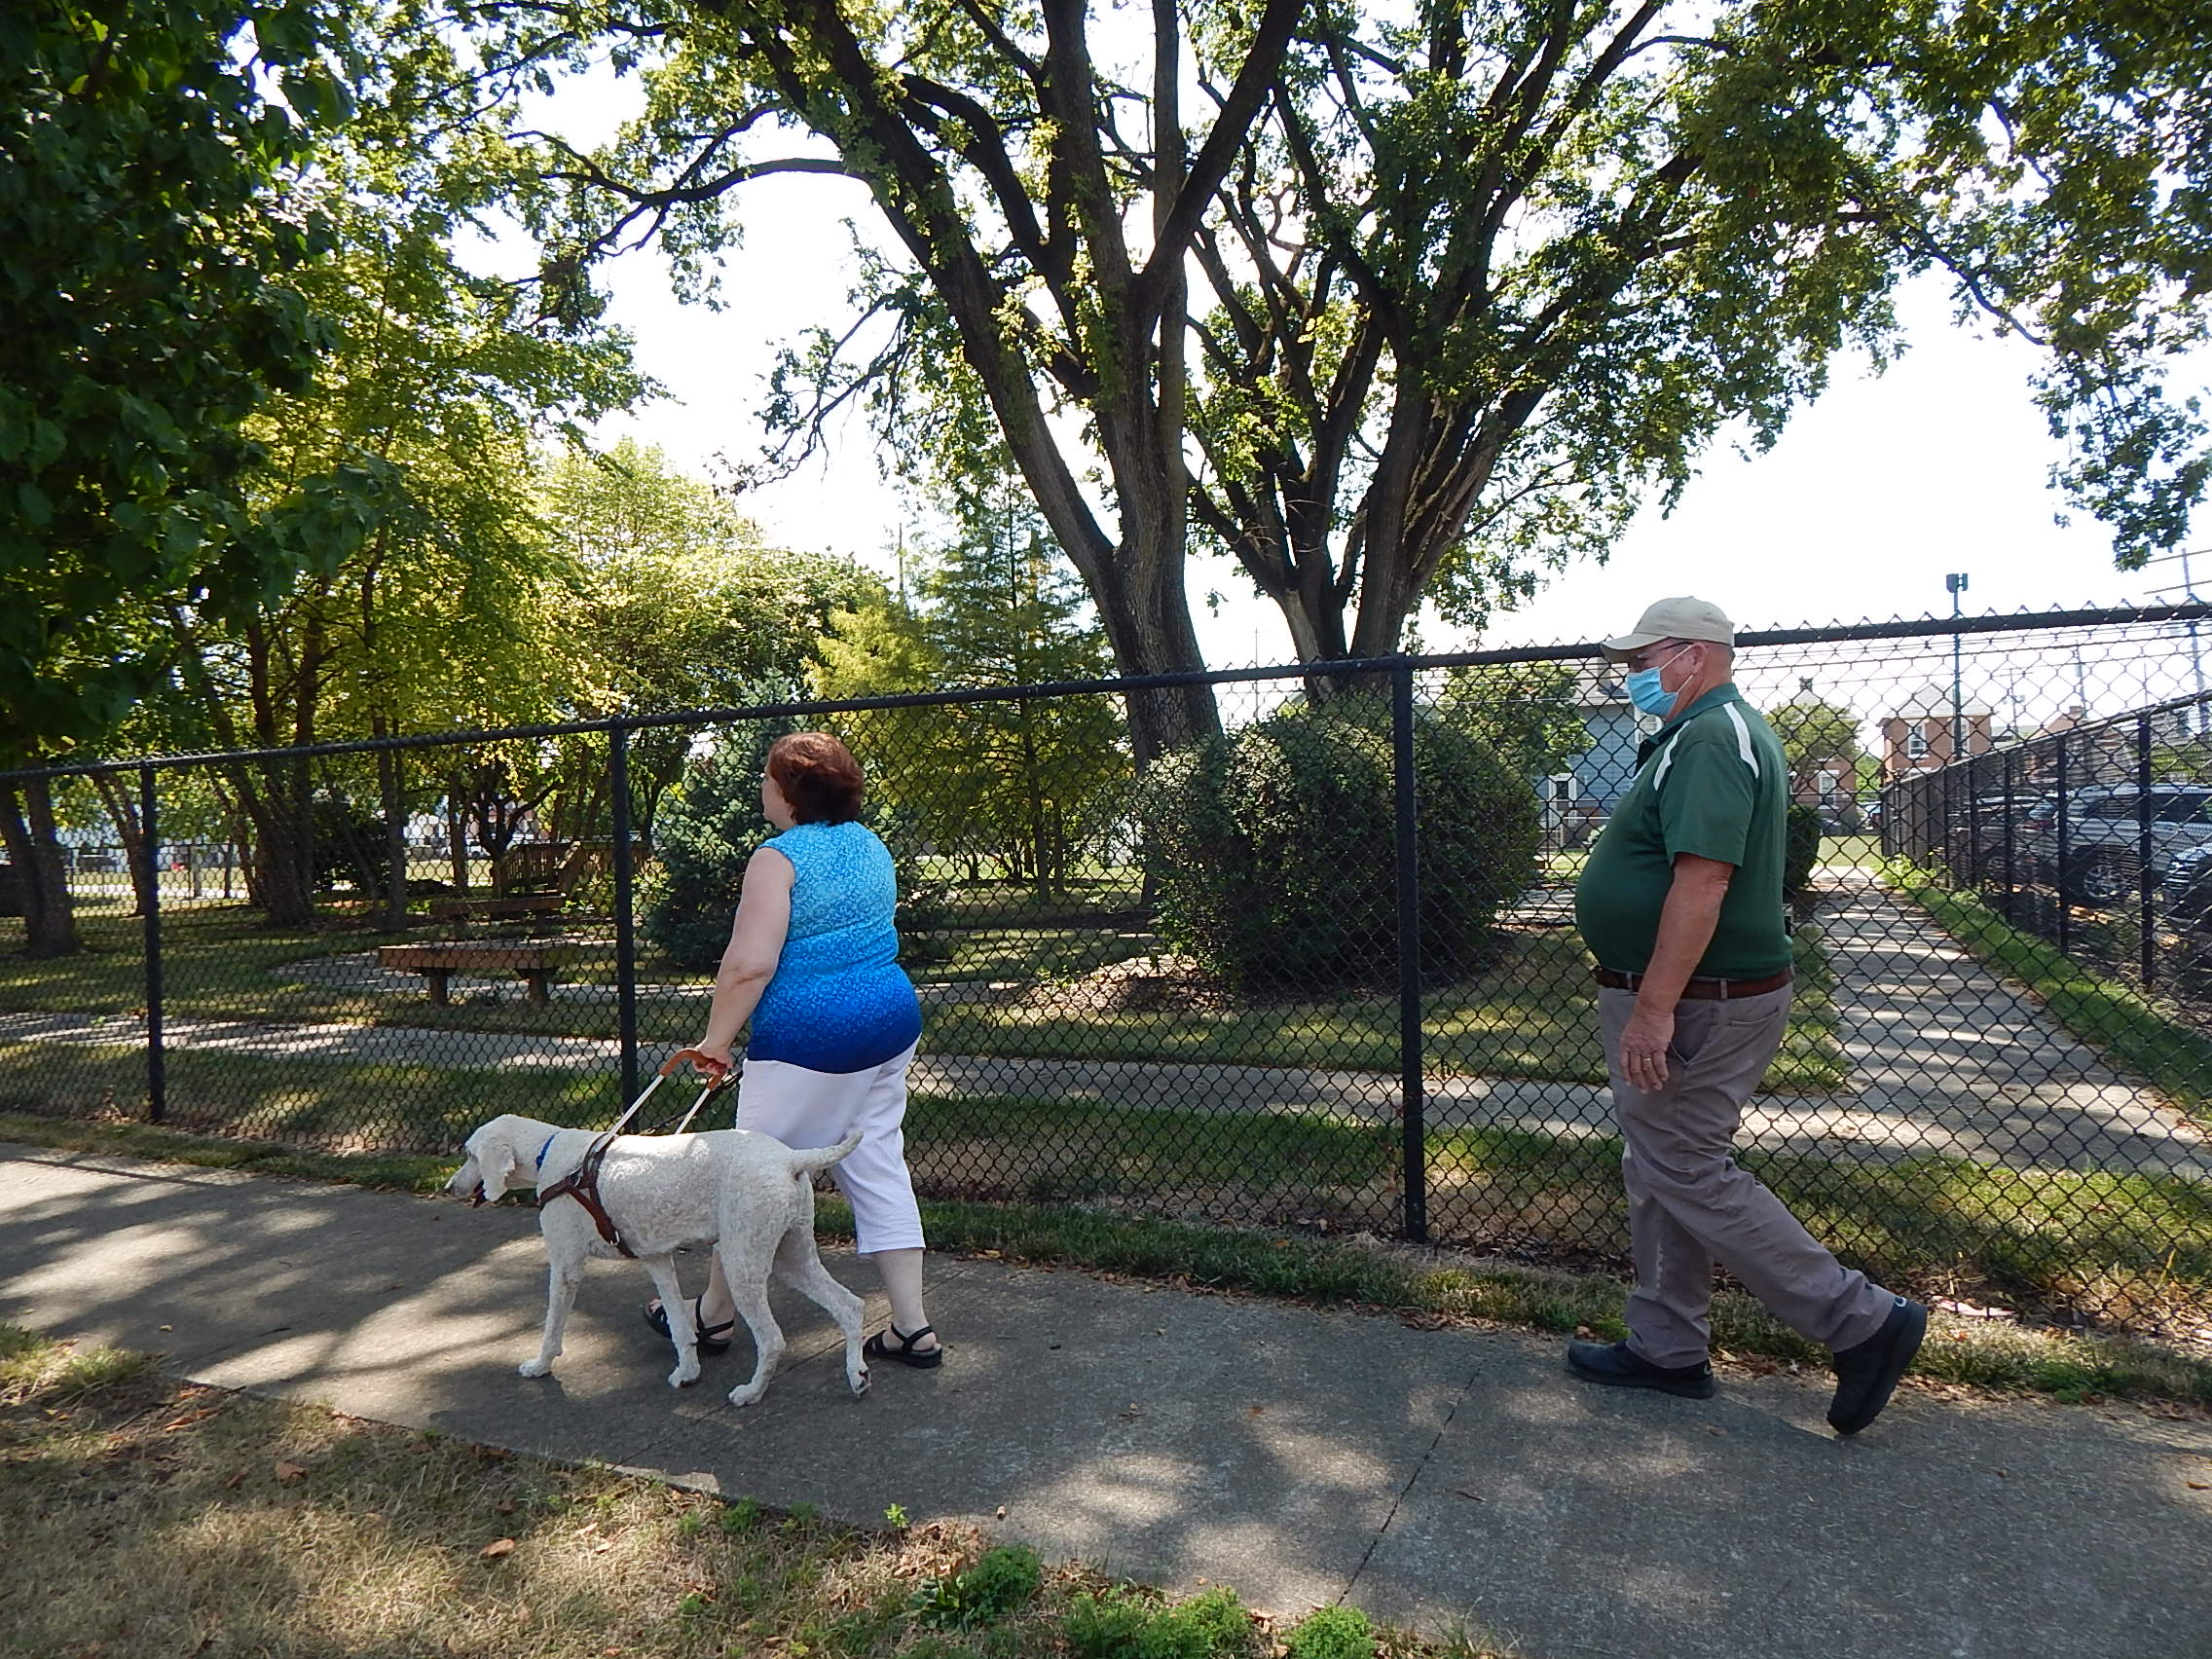 White Standard Poodle guiding student in harness with Pilot Dog Trainer following